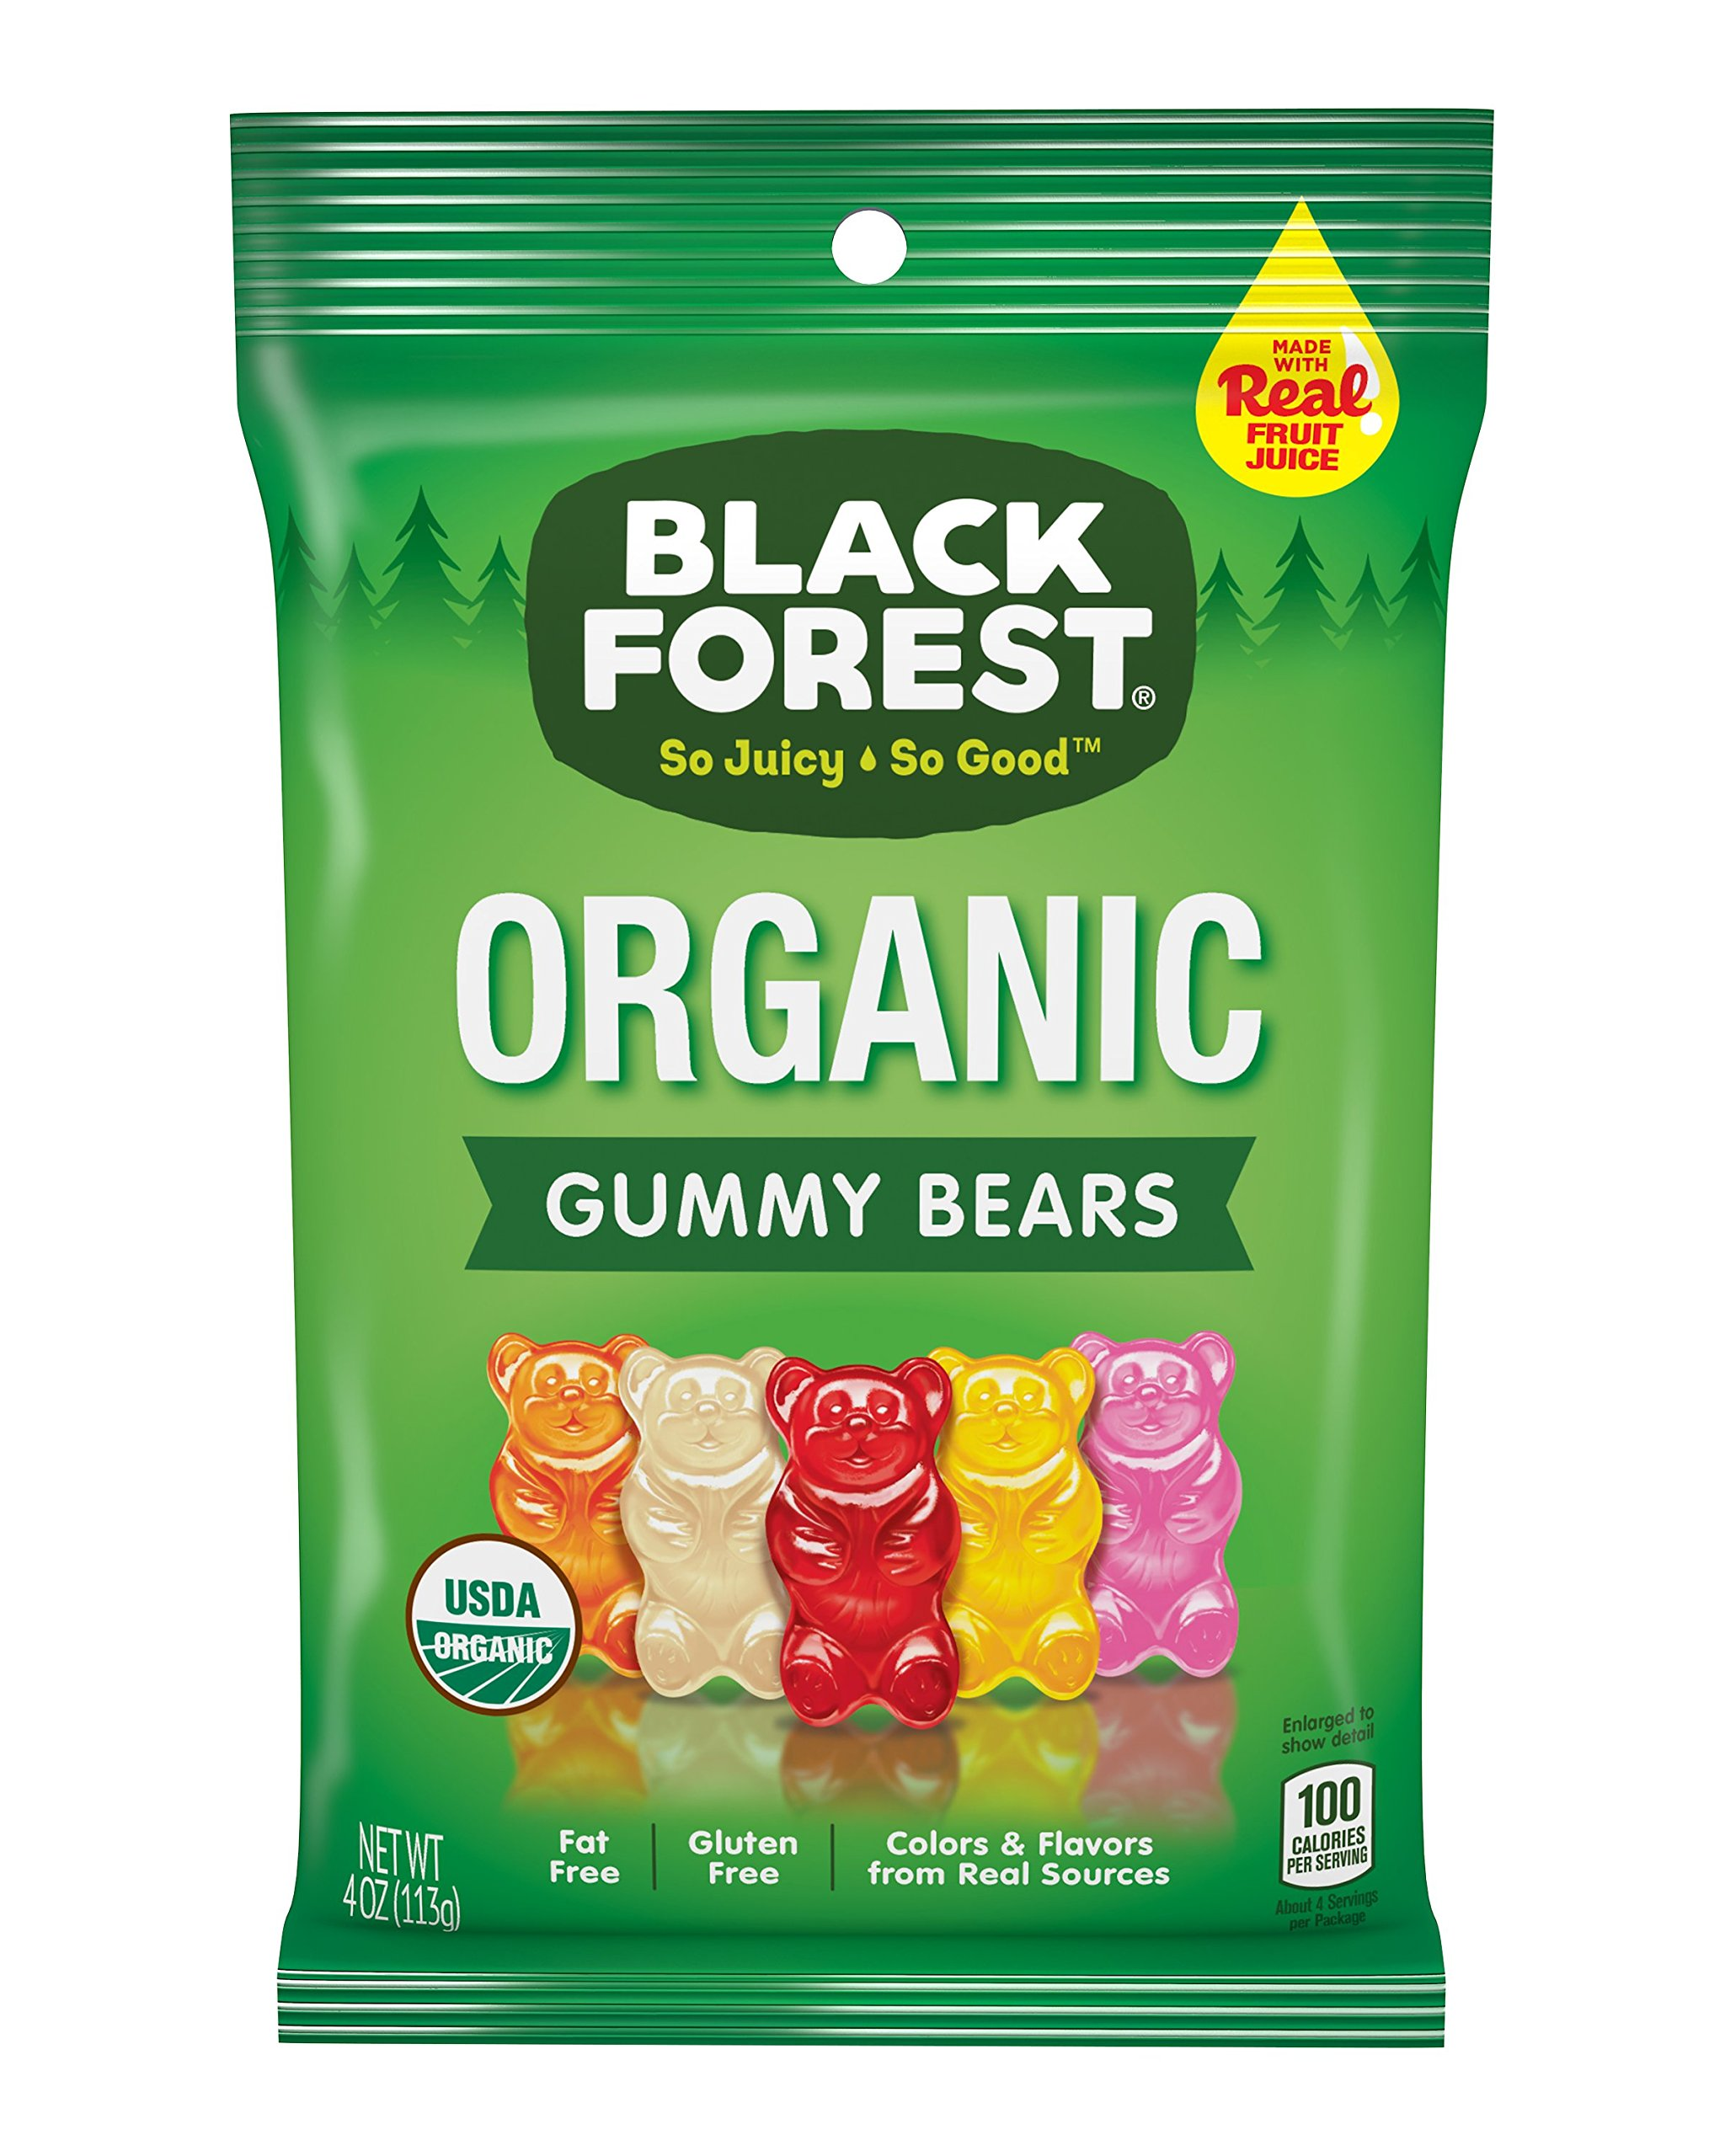 Black Forest Organic Gummy Bears Candy, 4 Ounce Bag, Pack of 12